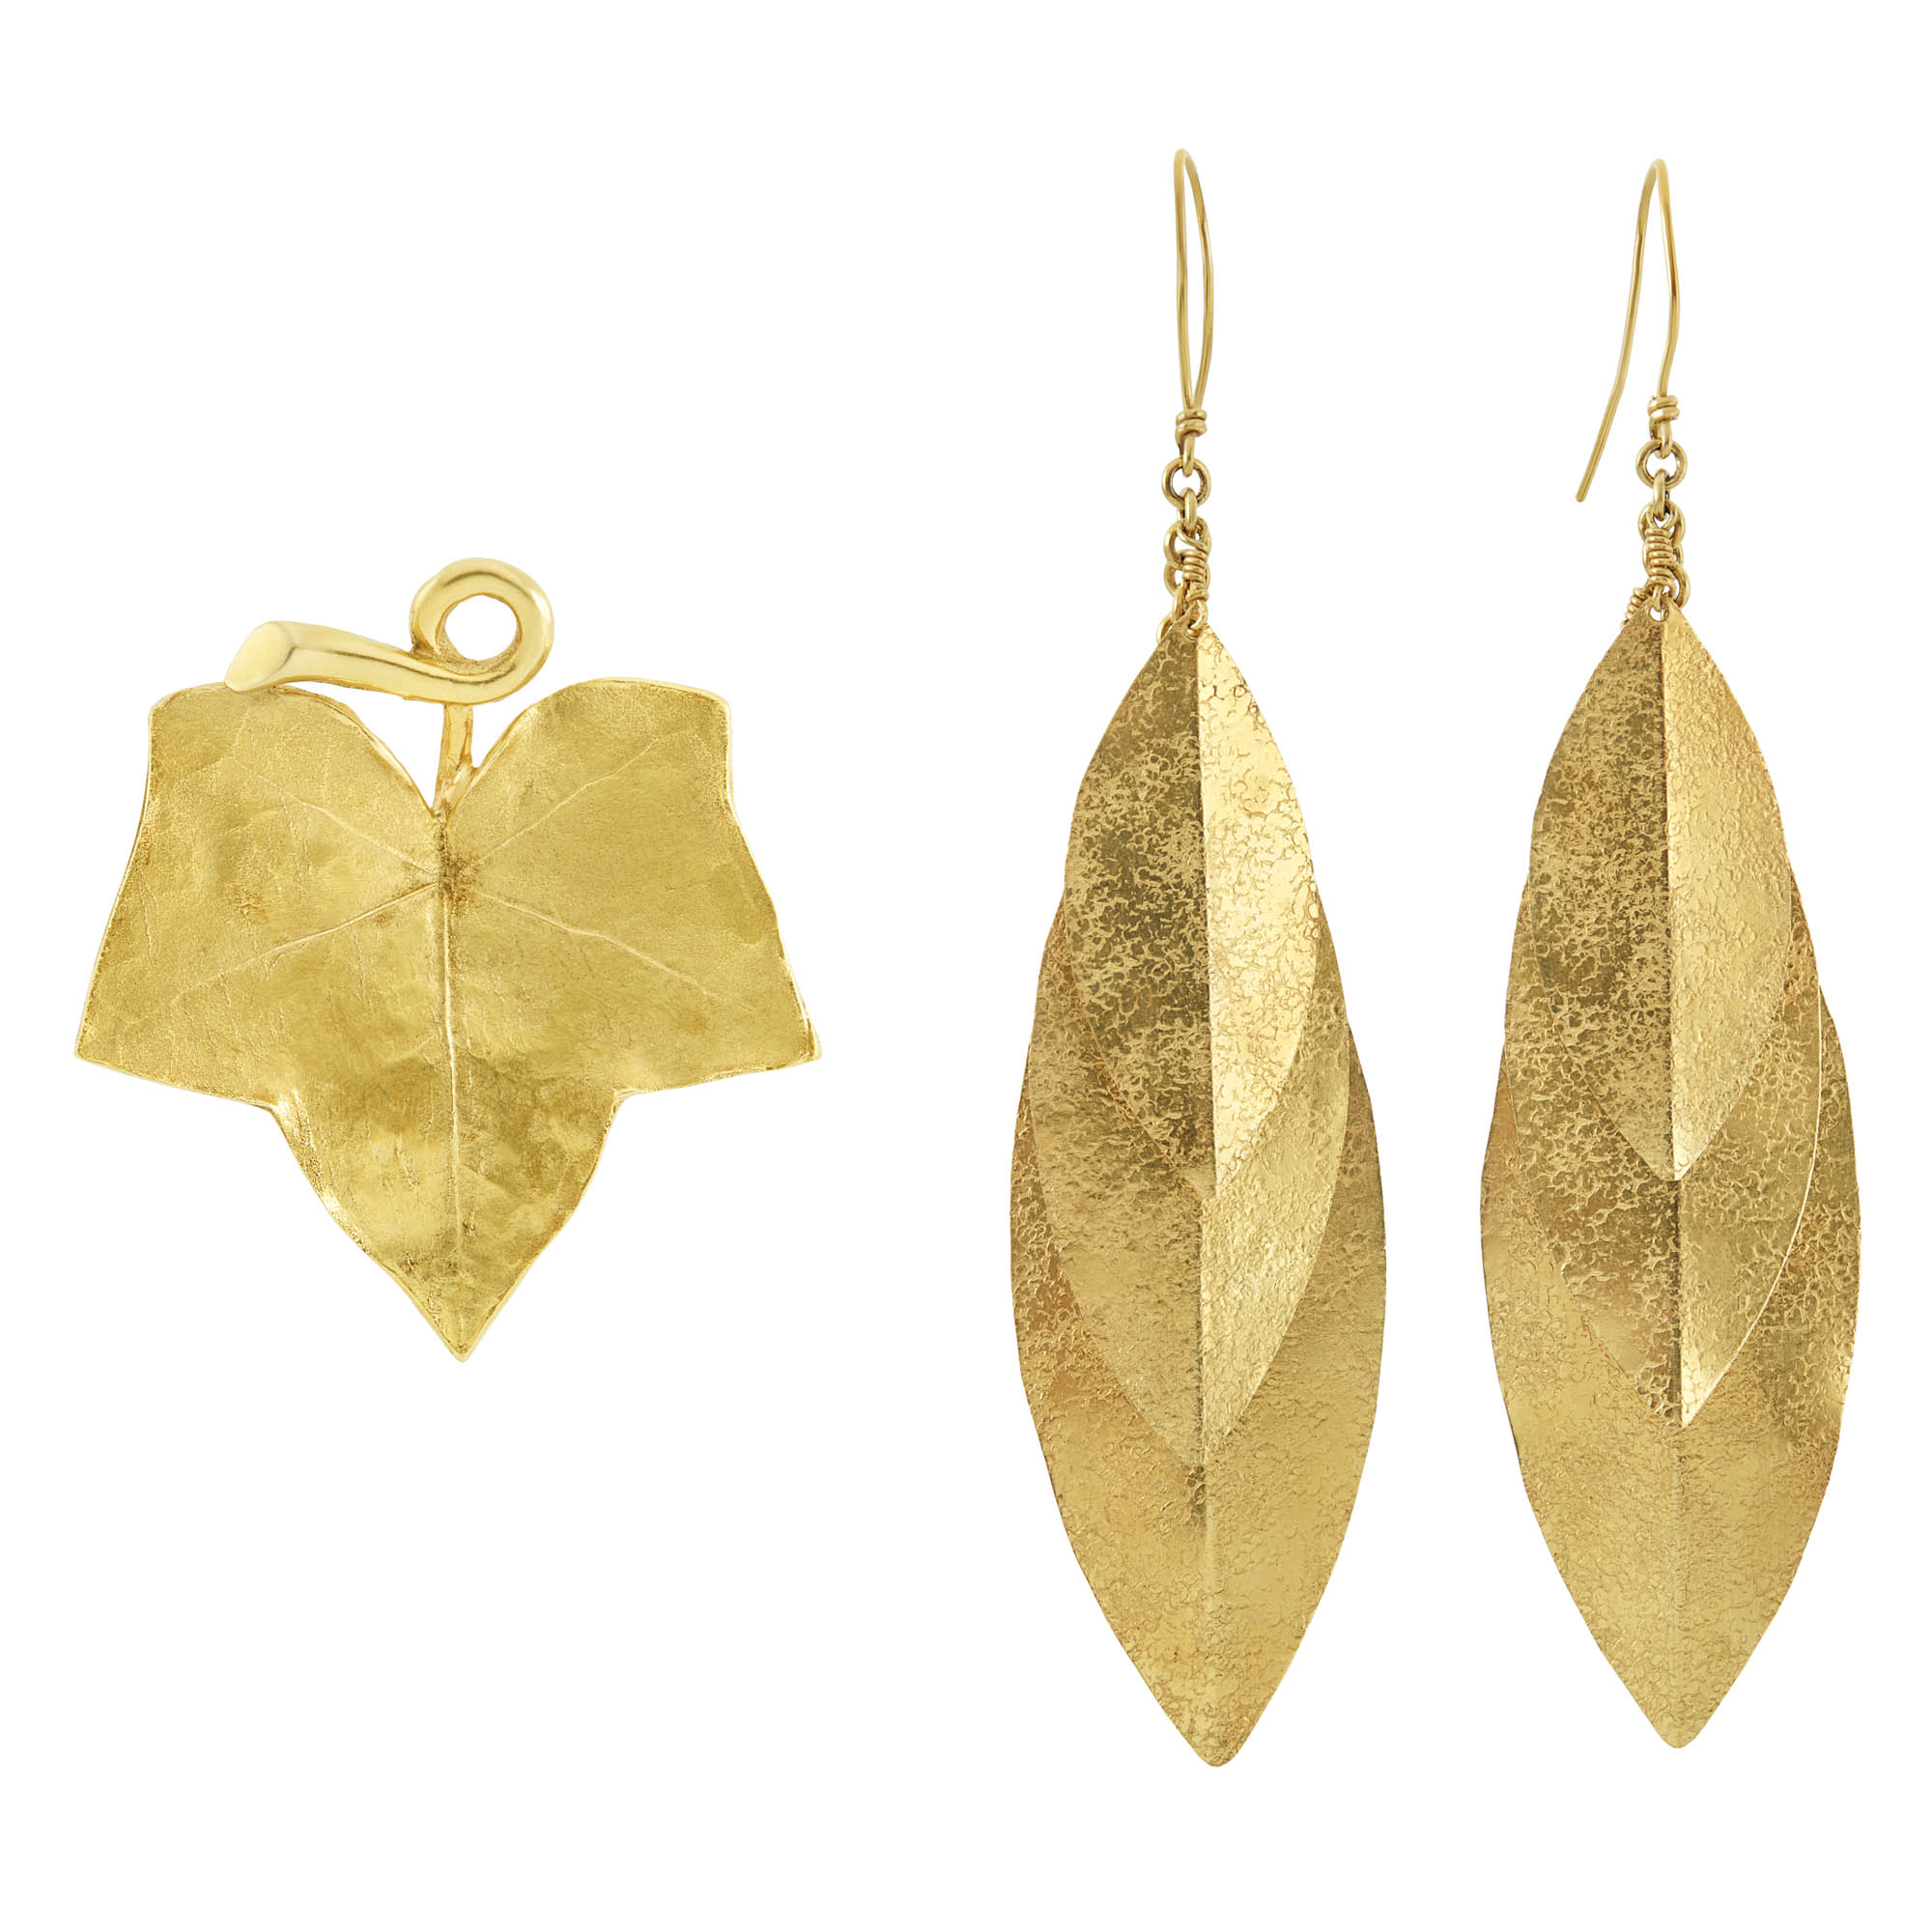 Lot image - Pair of Gold Leaf Earrings and Brooch